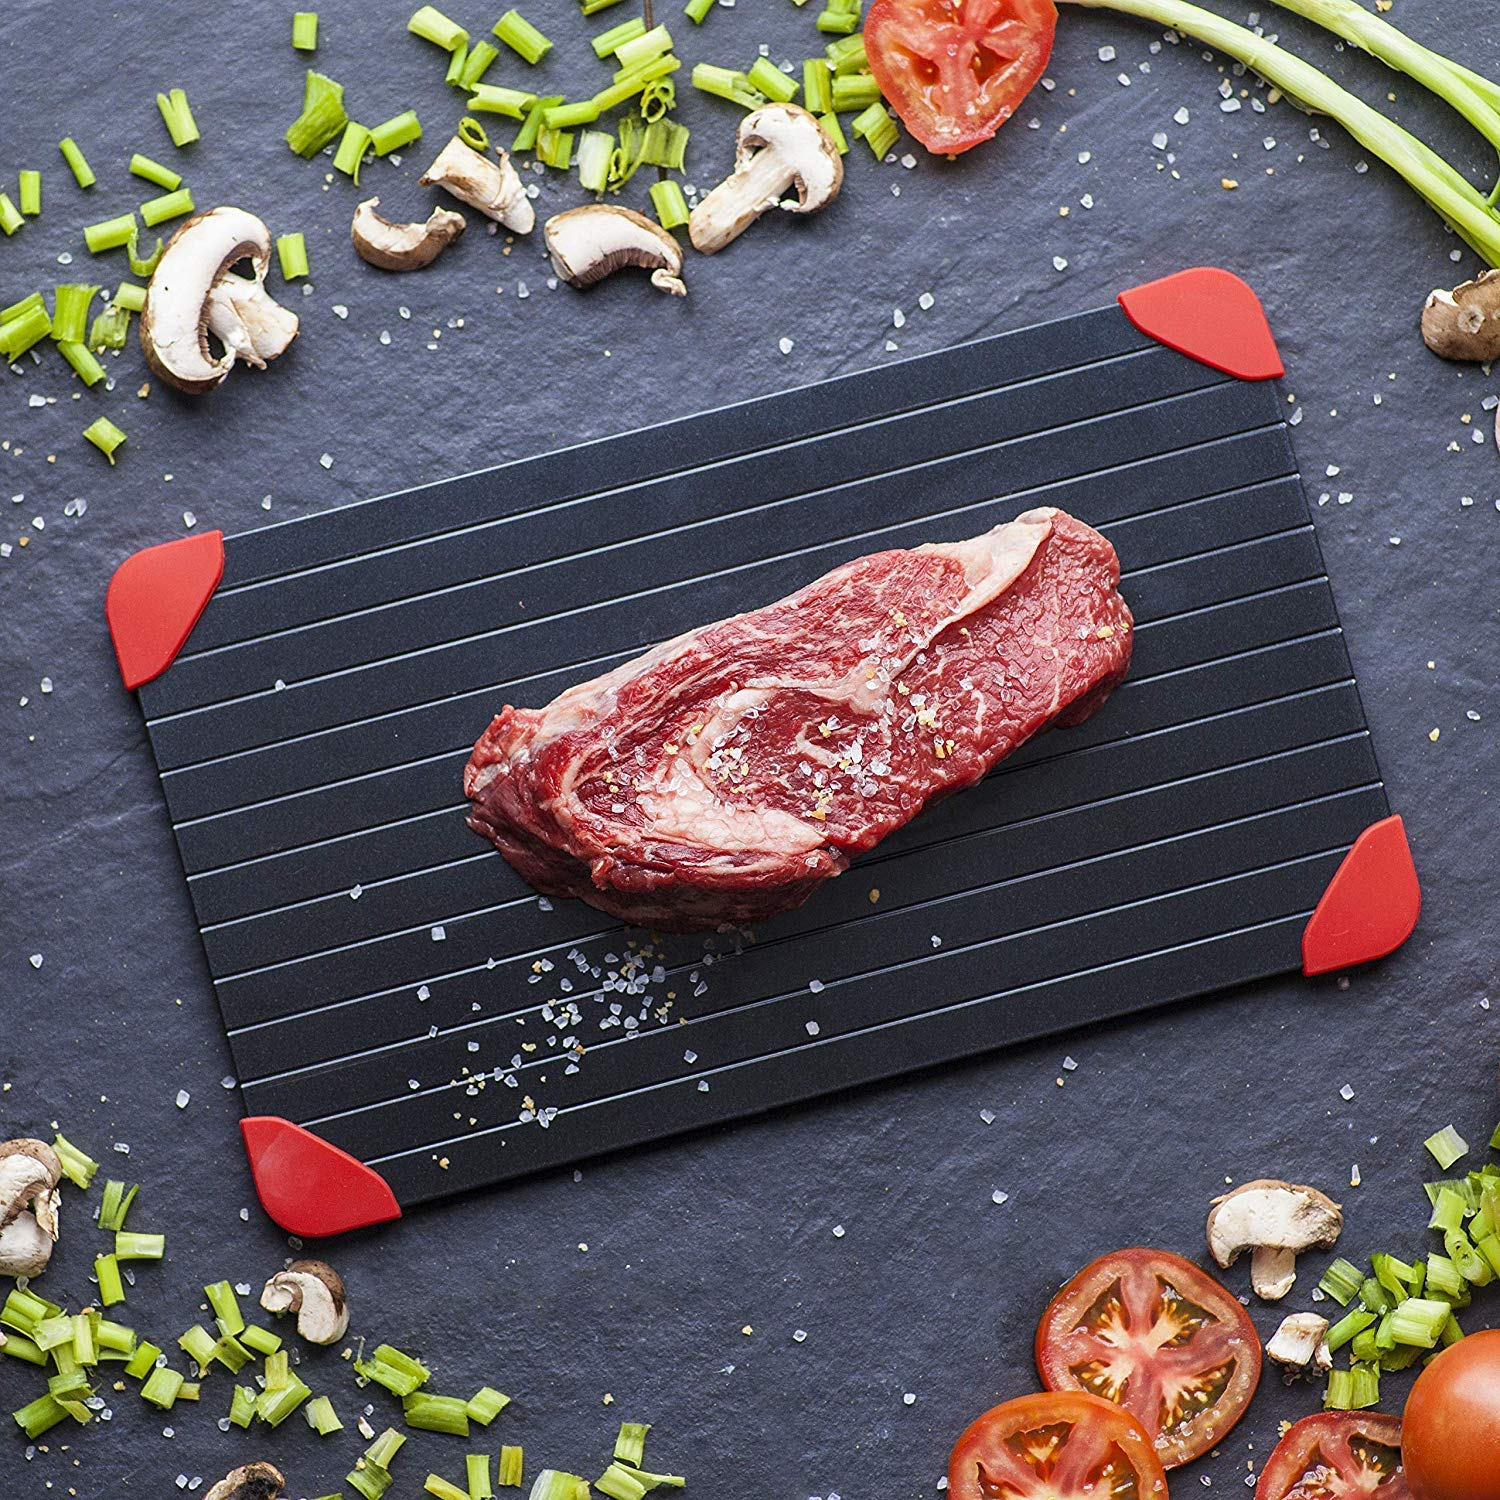 Defrosting Tray with Red Silicone Border - LARGEST SIZE - Quick Thaw Frozen Food Rapidly and Safely FDA Approved - Keto/Paleo / Atkins Tool